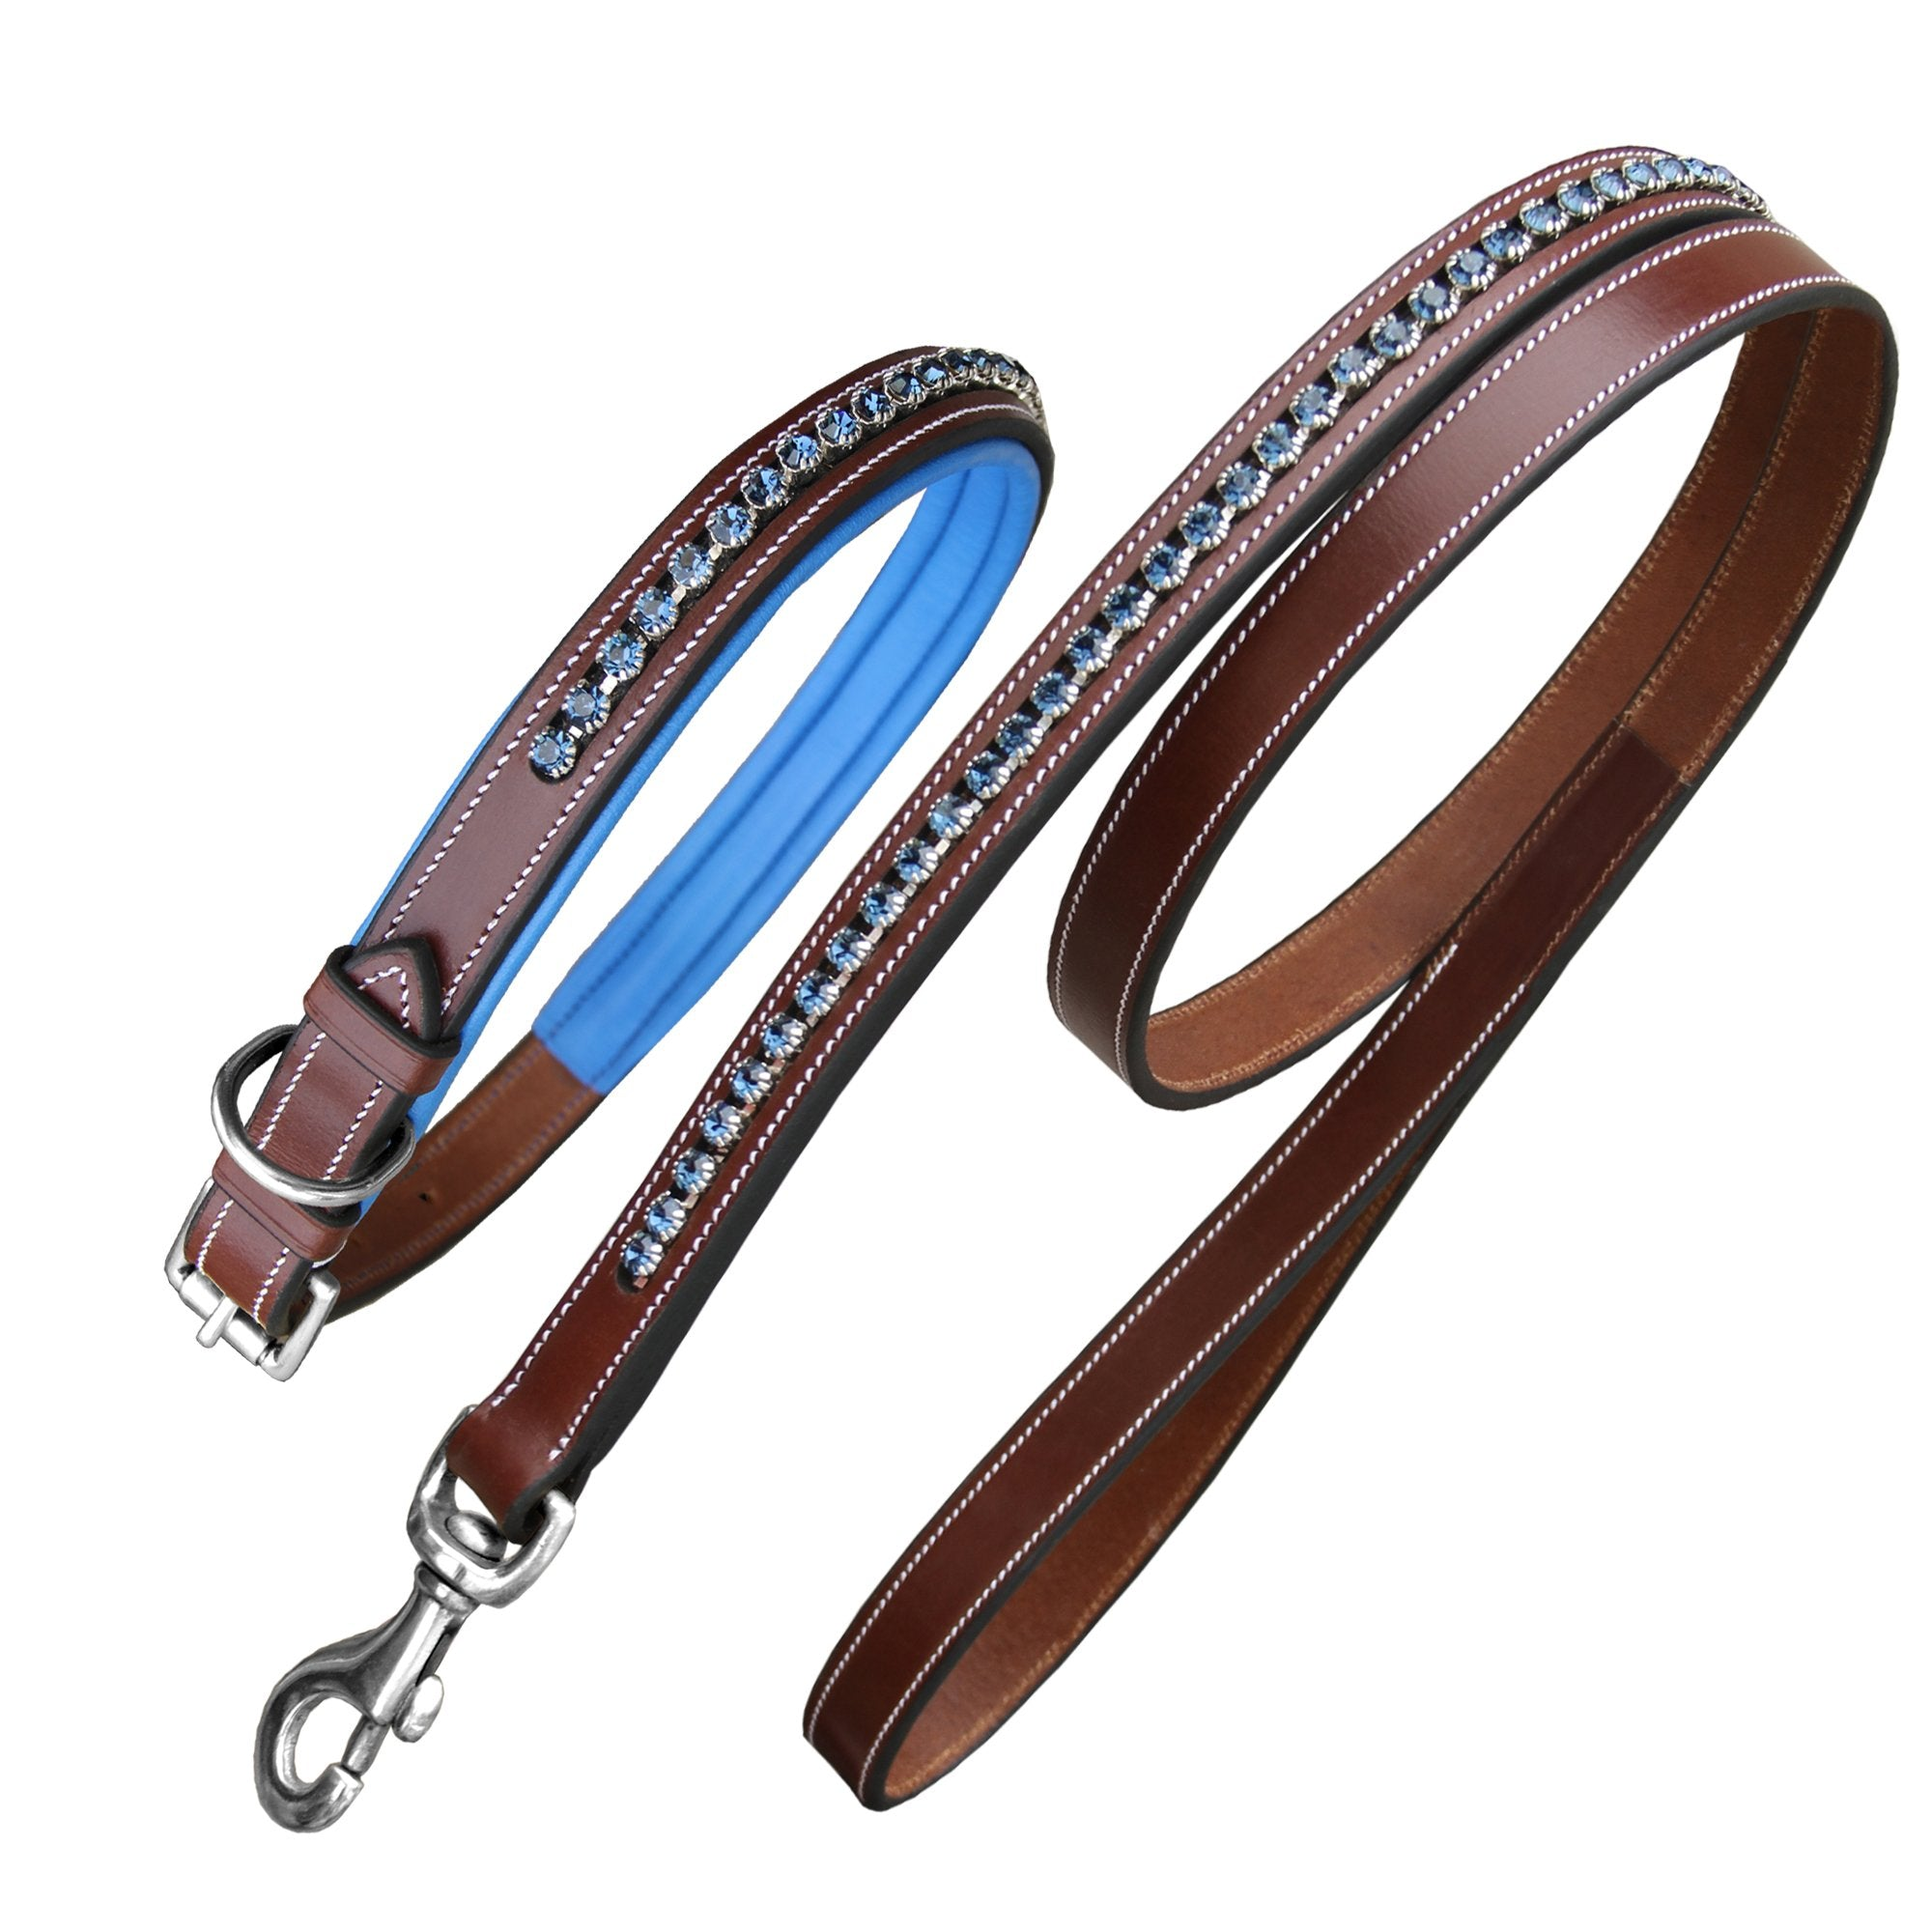 ExionPro Dark Blue Bling Dog Collar With Lead-Dog Collar and Leads from Bridles & Reins